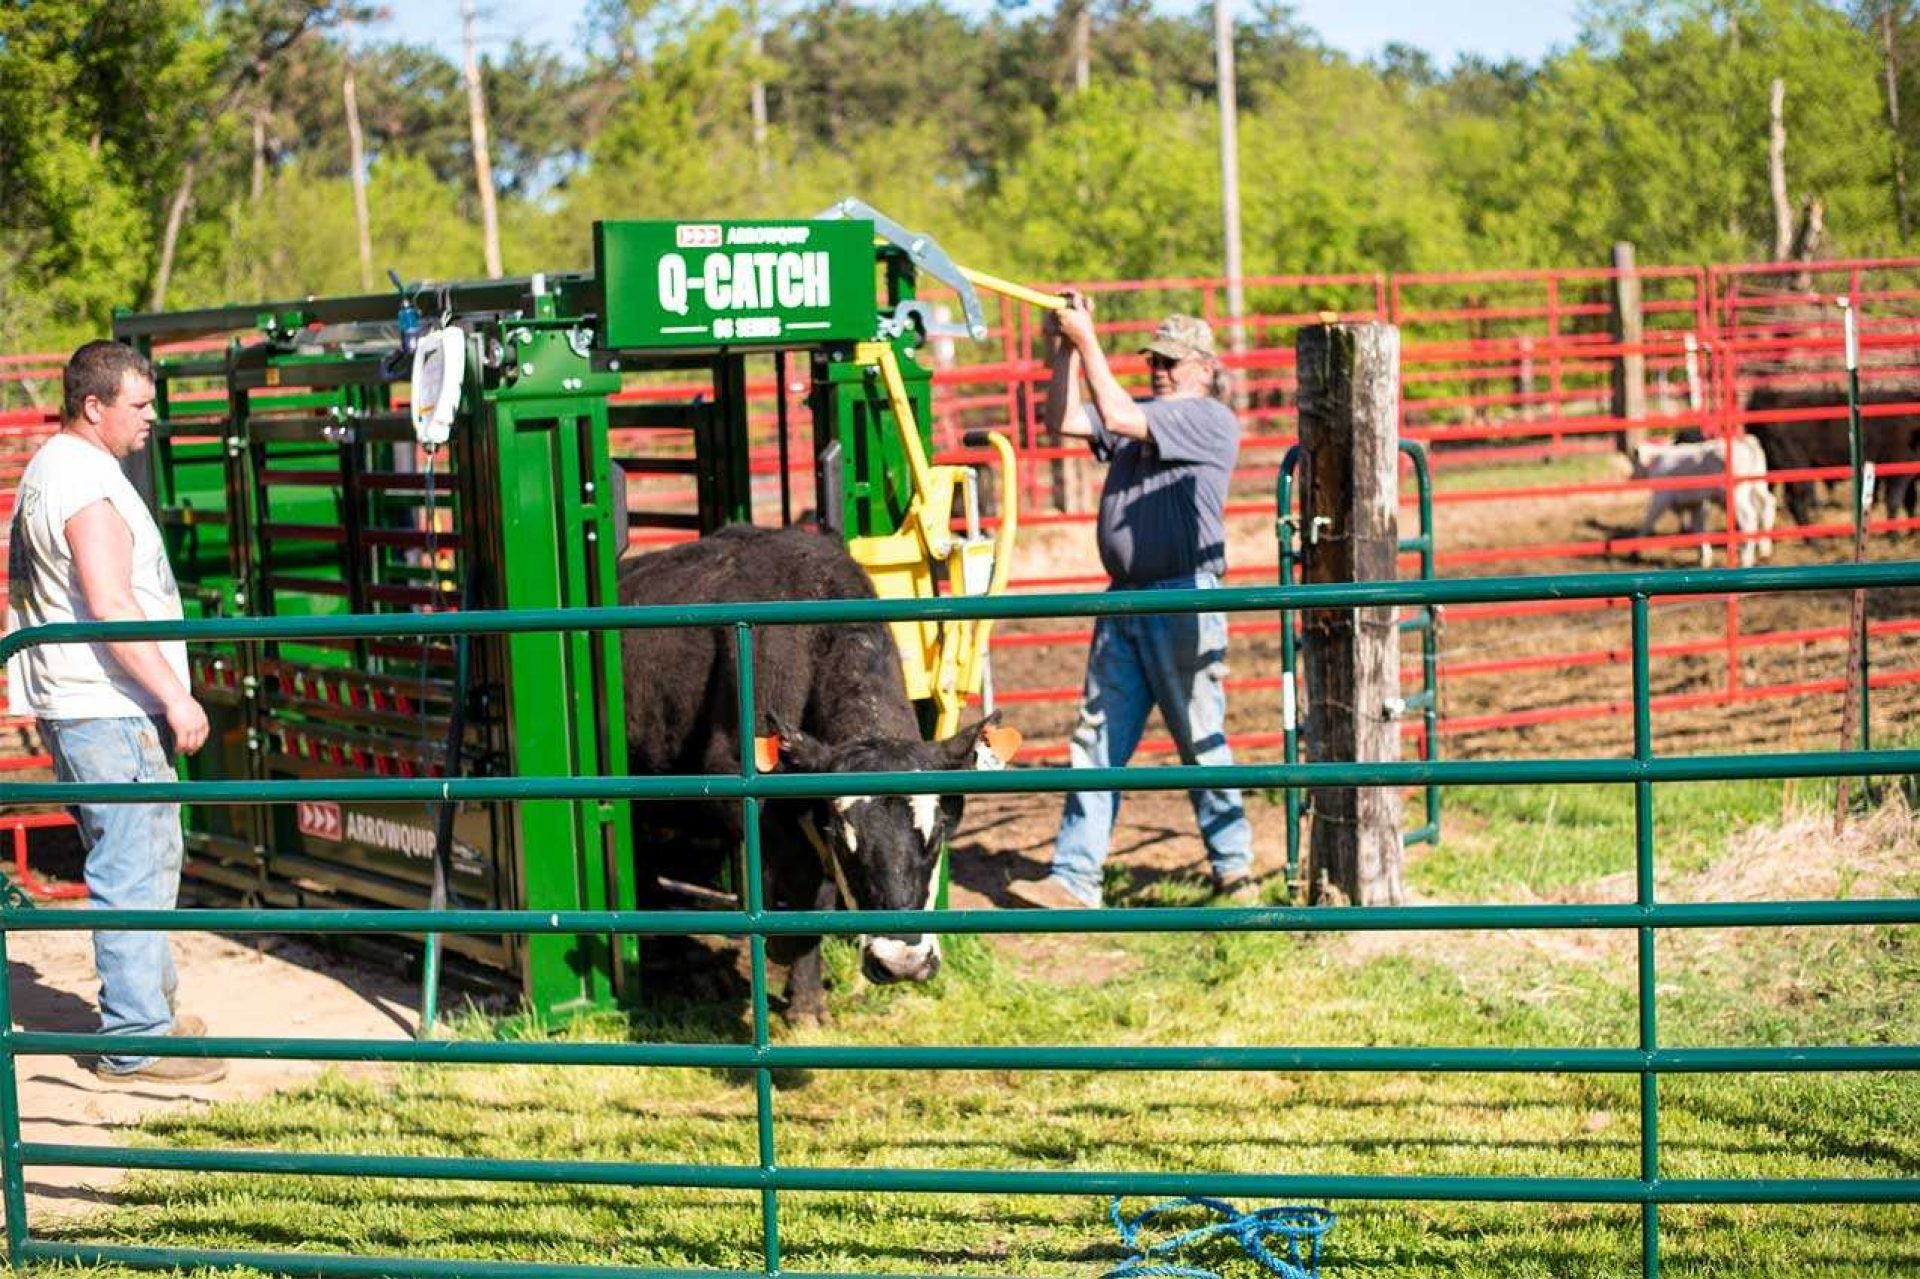 Two men working large cow in Q-Catch Cattle Chute